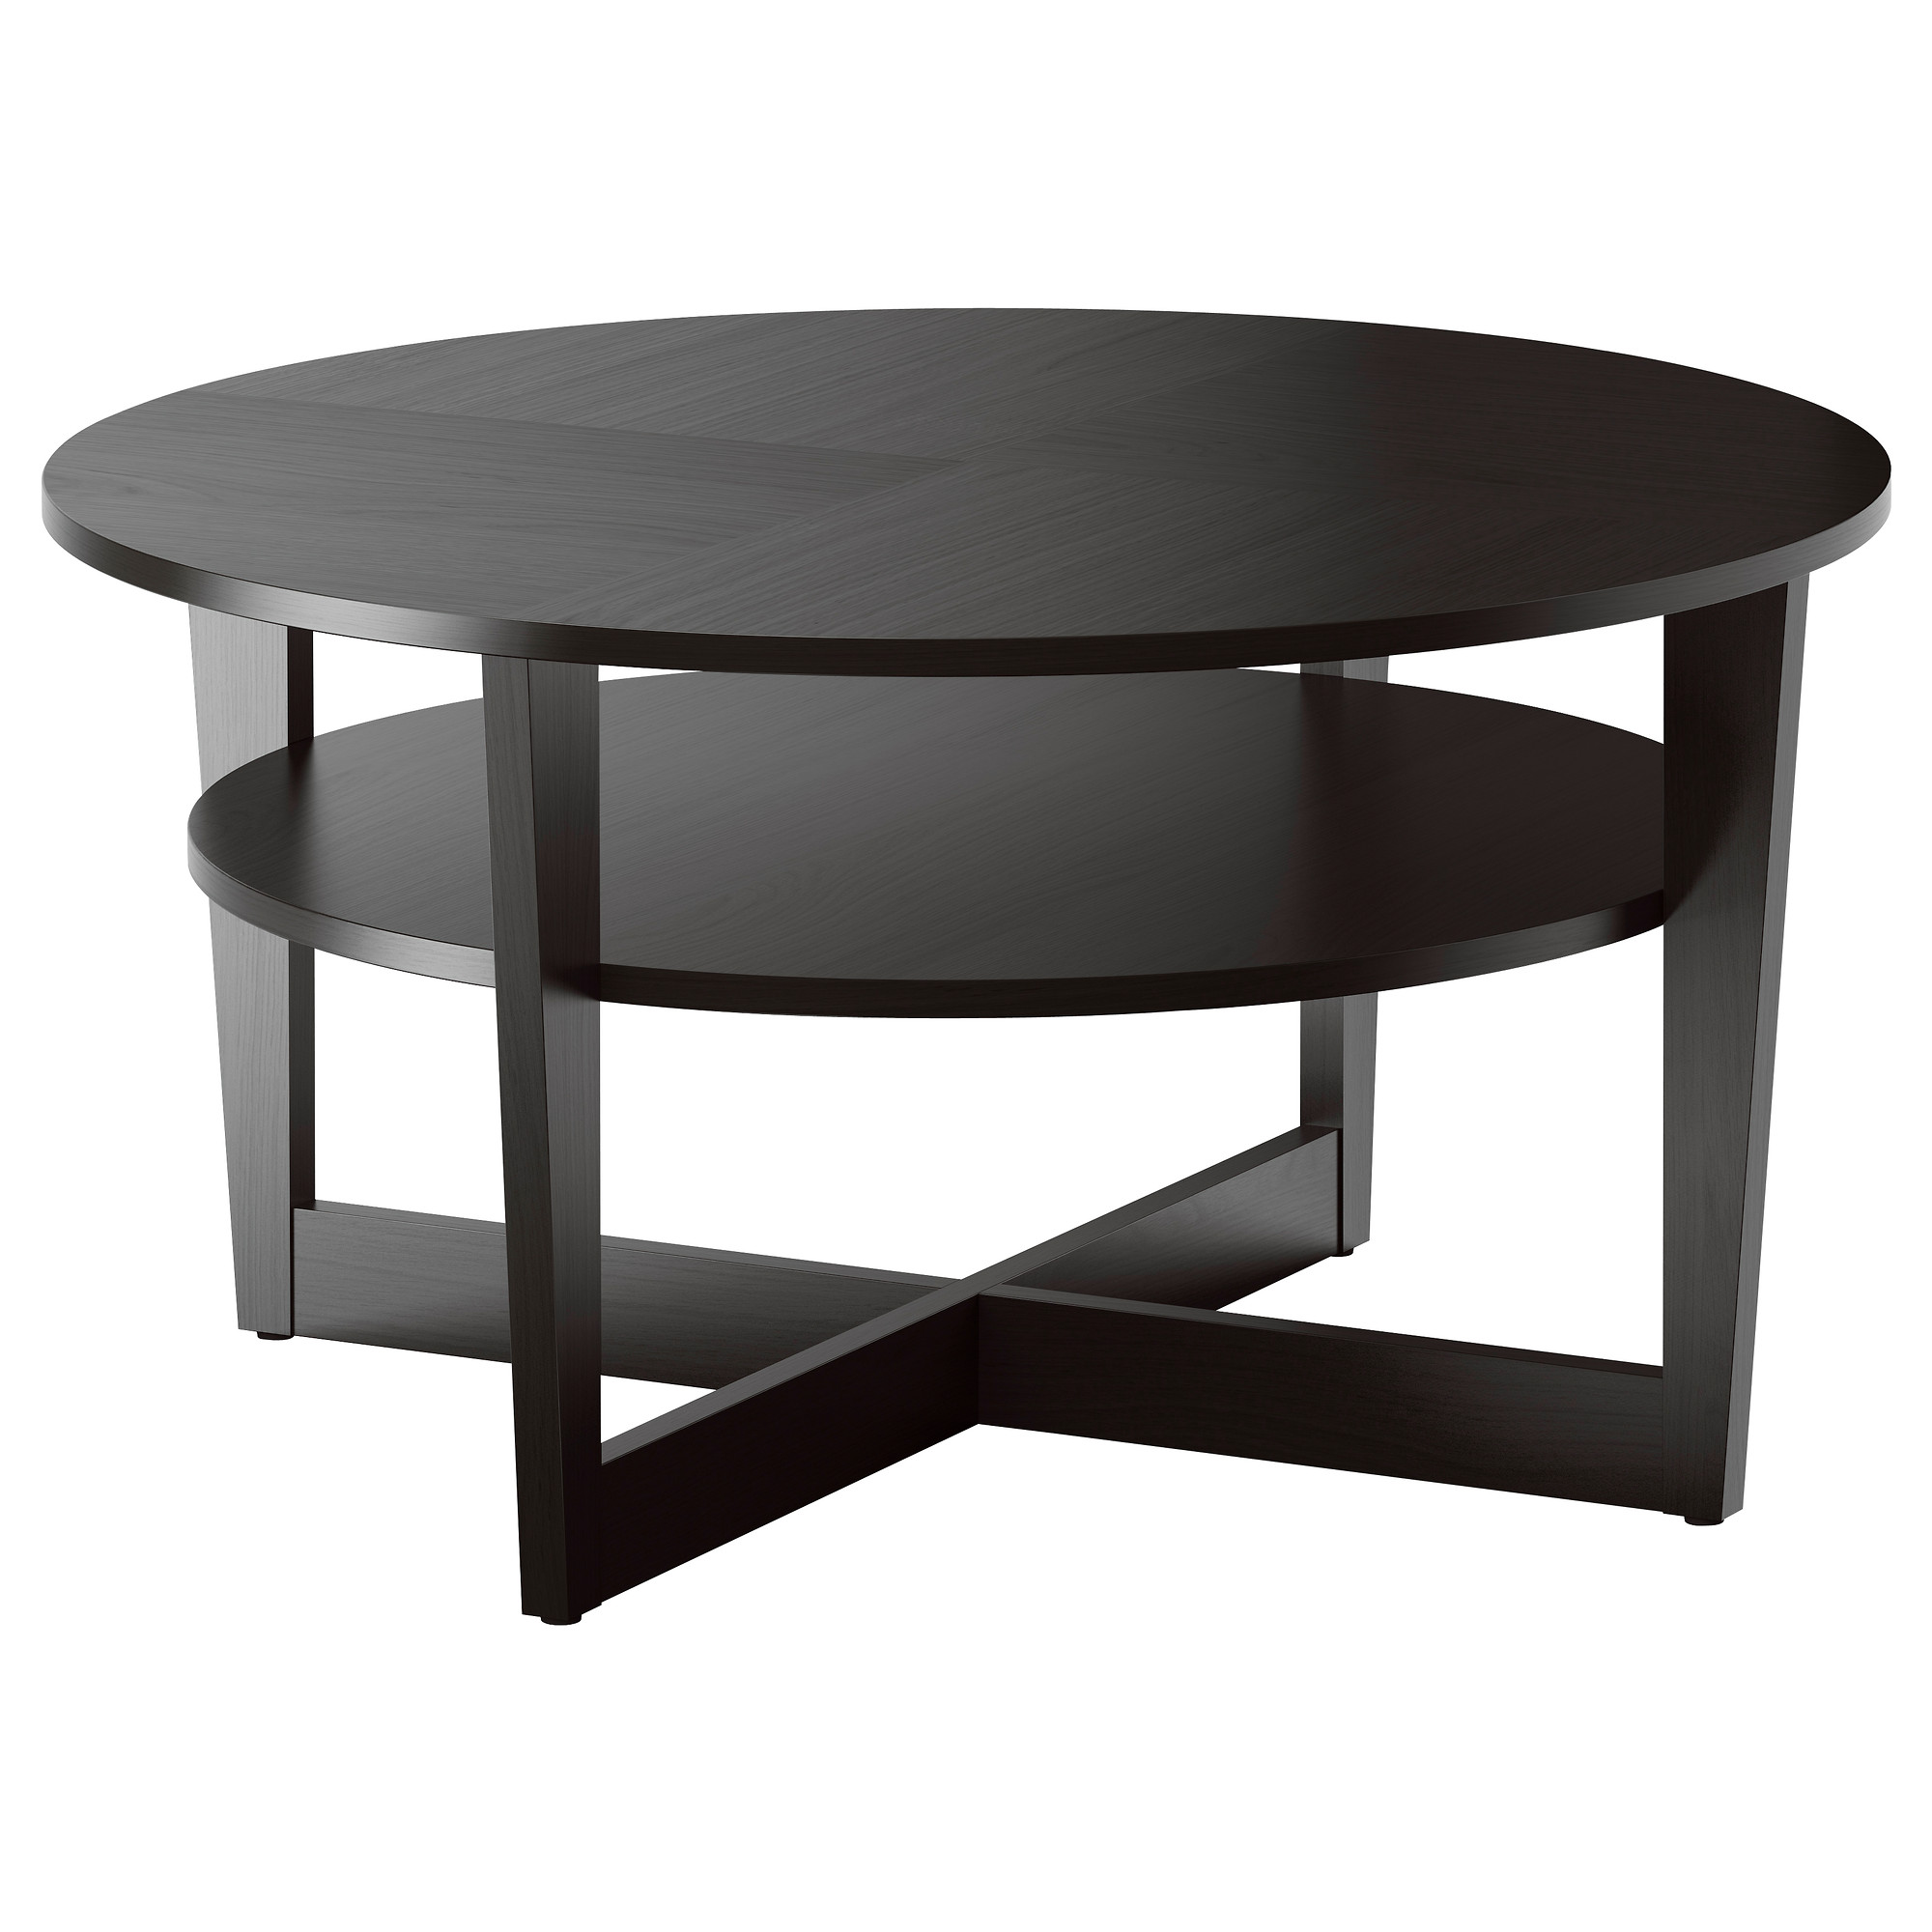 Ikea-Black-Coffee-Table-With-Glass-Top-Unique-and-Functional-Shower-Bench-Designs-is-both-practical-and-stylish (Image 8 of 10)